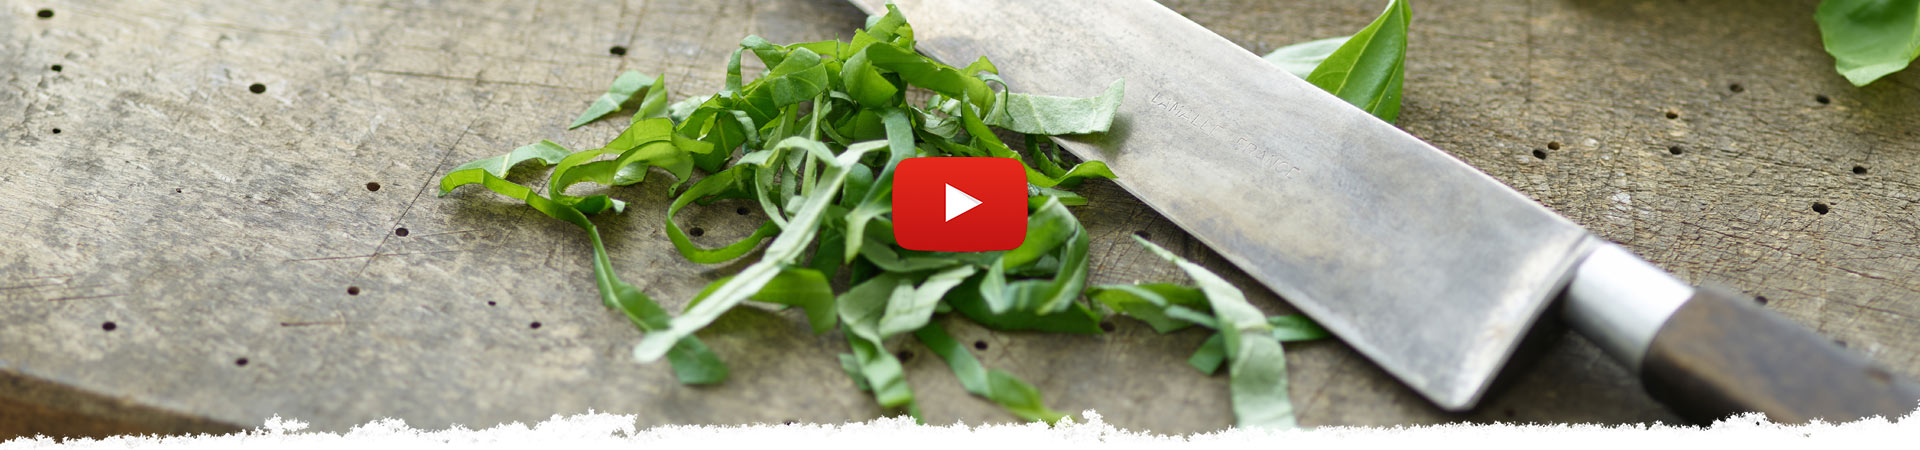 How to Chiffonade Basil